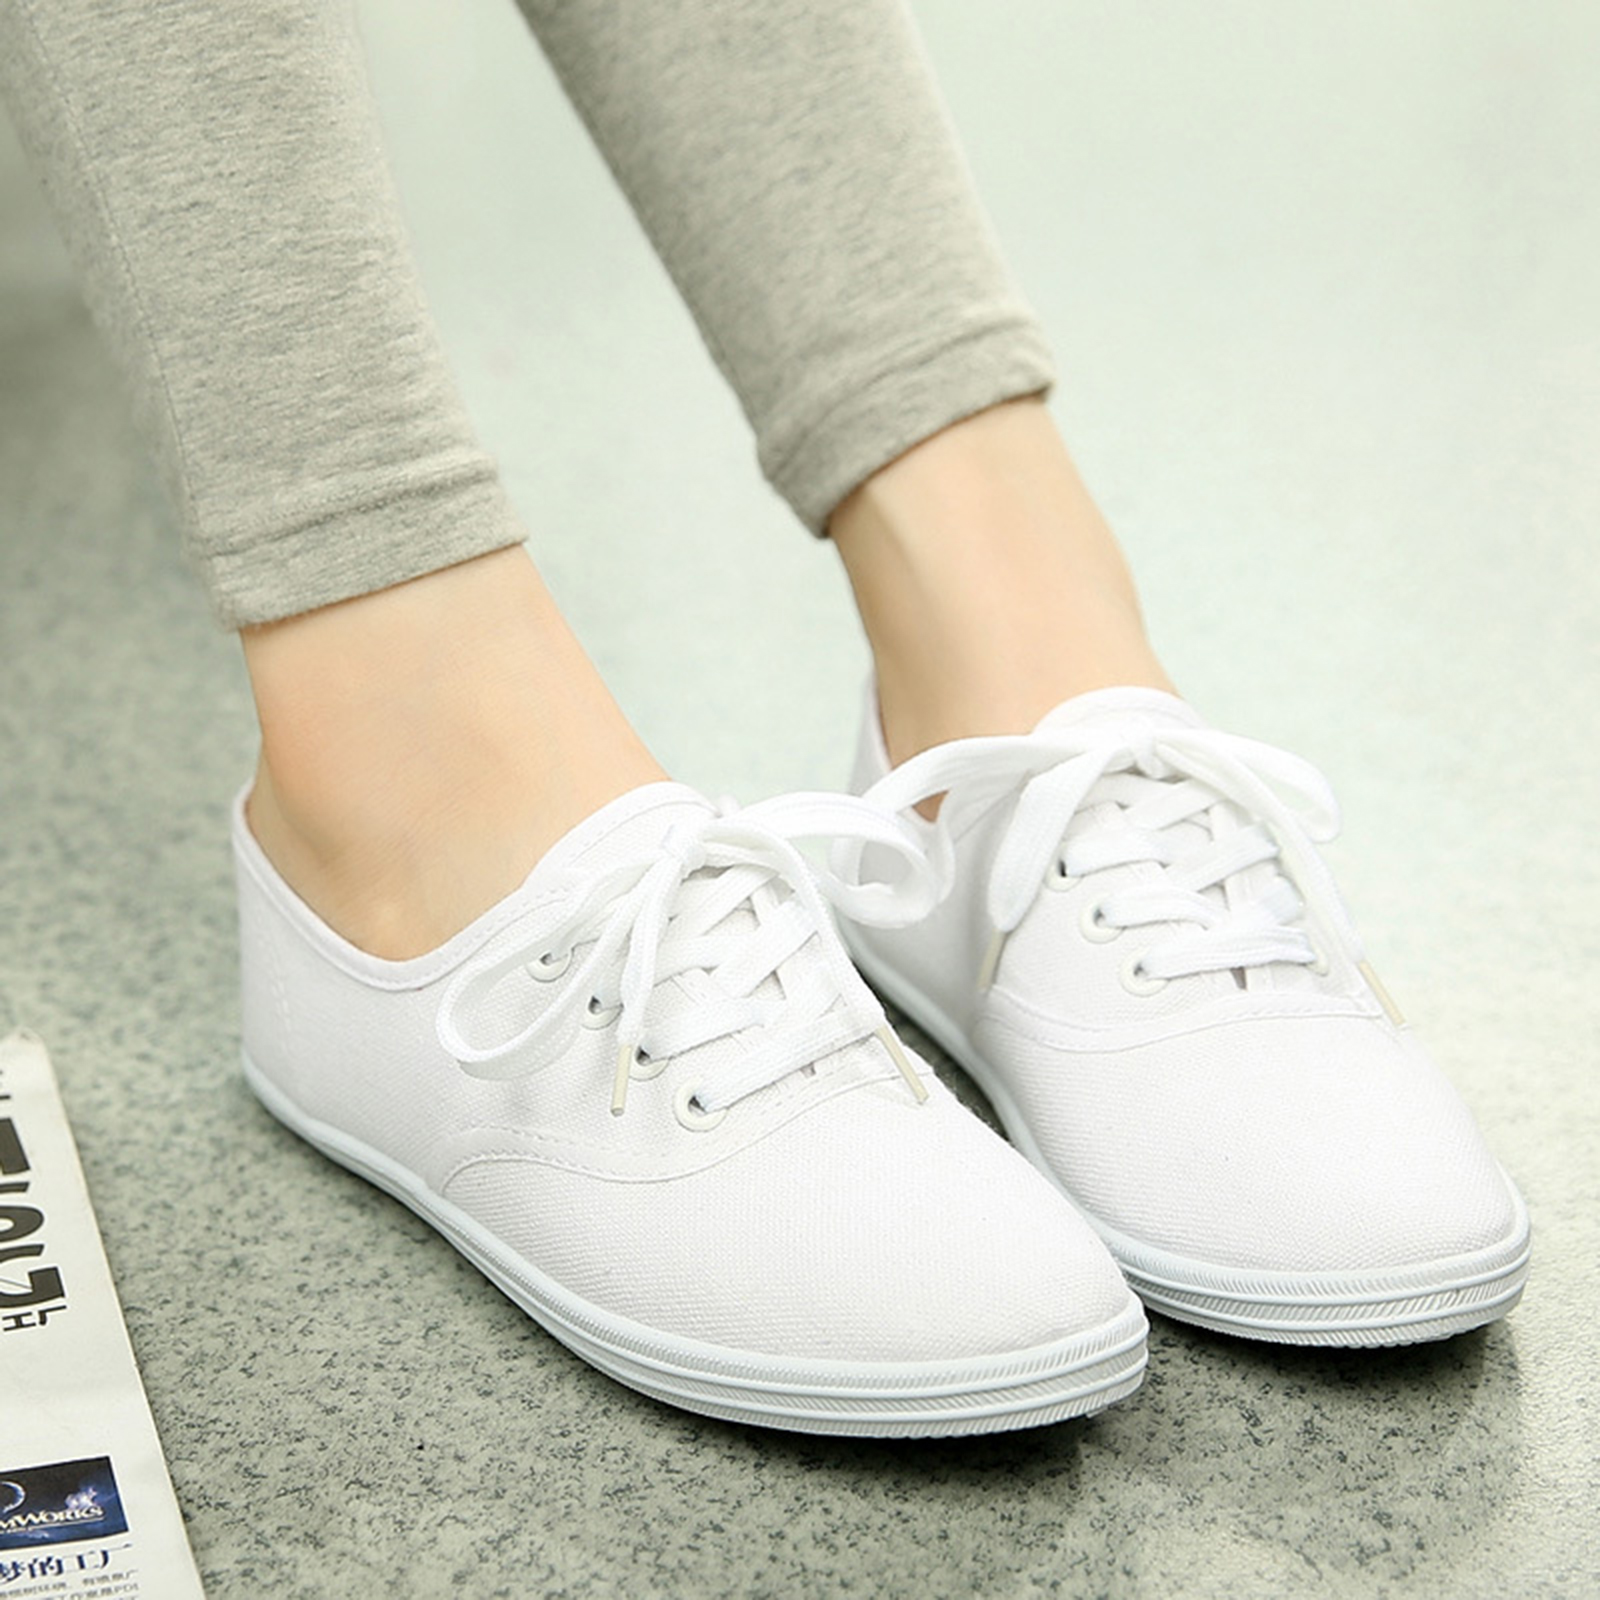 Women Ladies New Comfortable Canvas Lace Up Casual Sneakers Tennis Flats Shoes